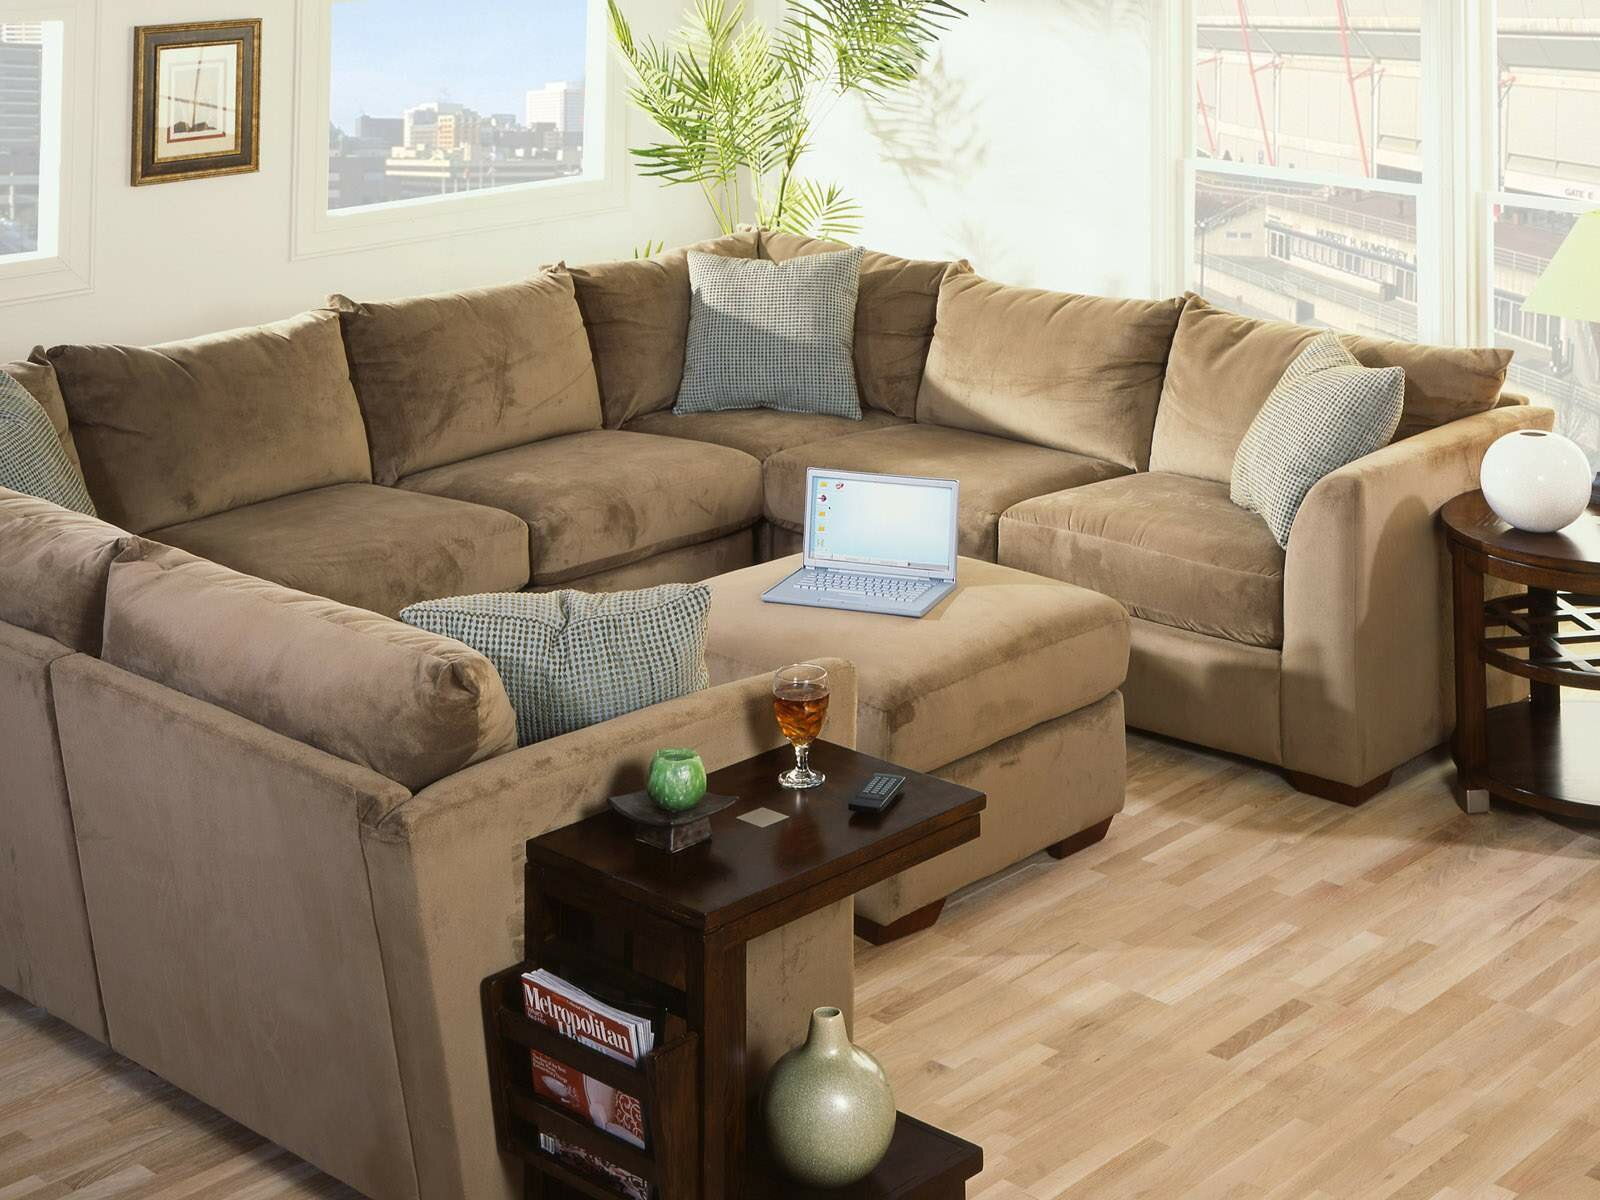 15 really beautiful sofa designs and ideas for Family room with sectional sofa